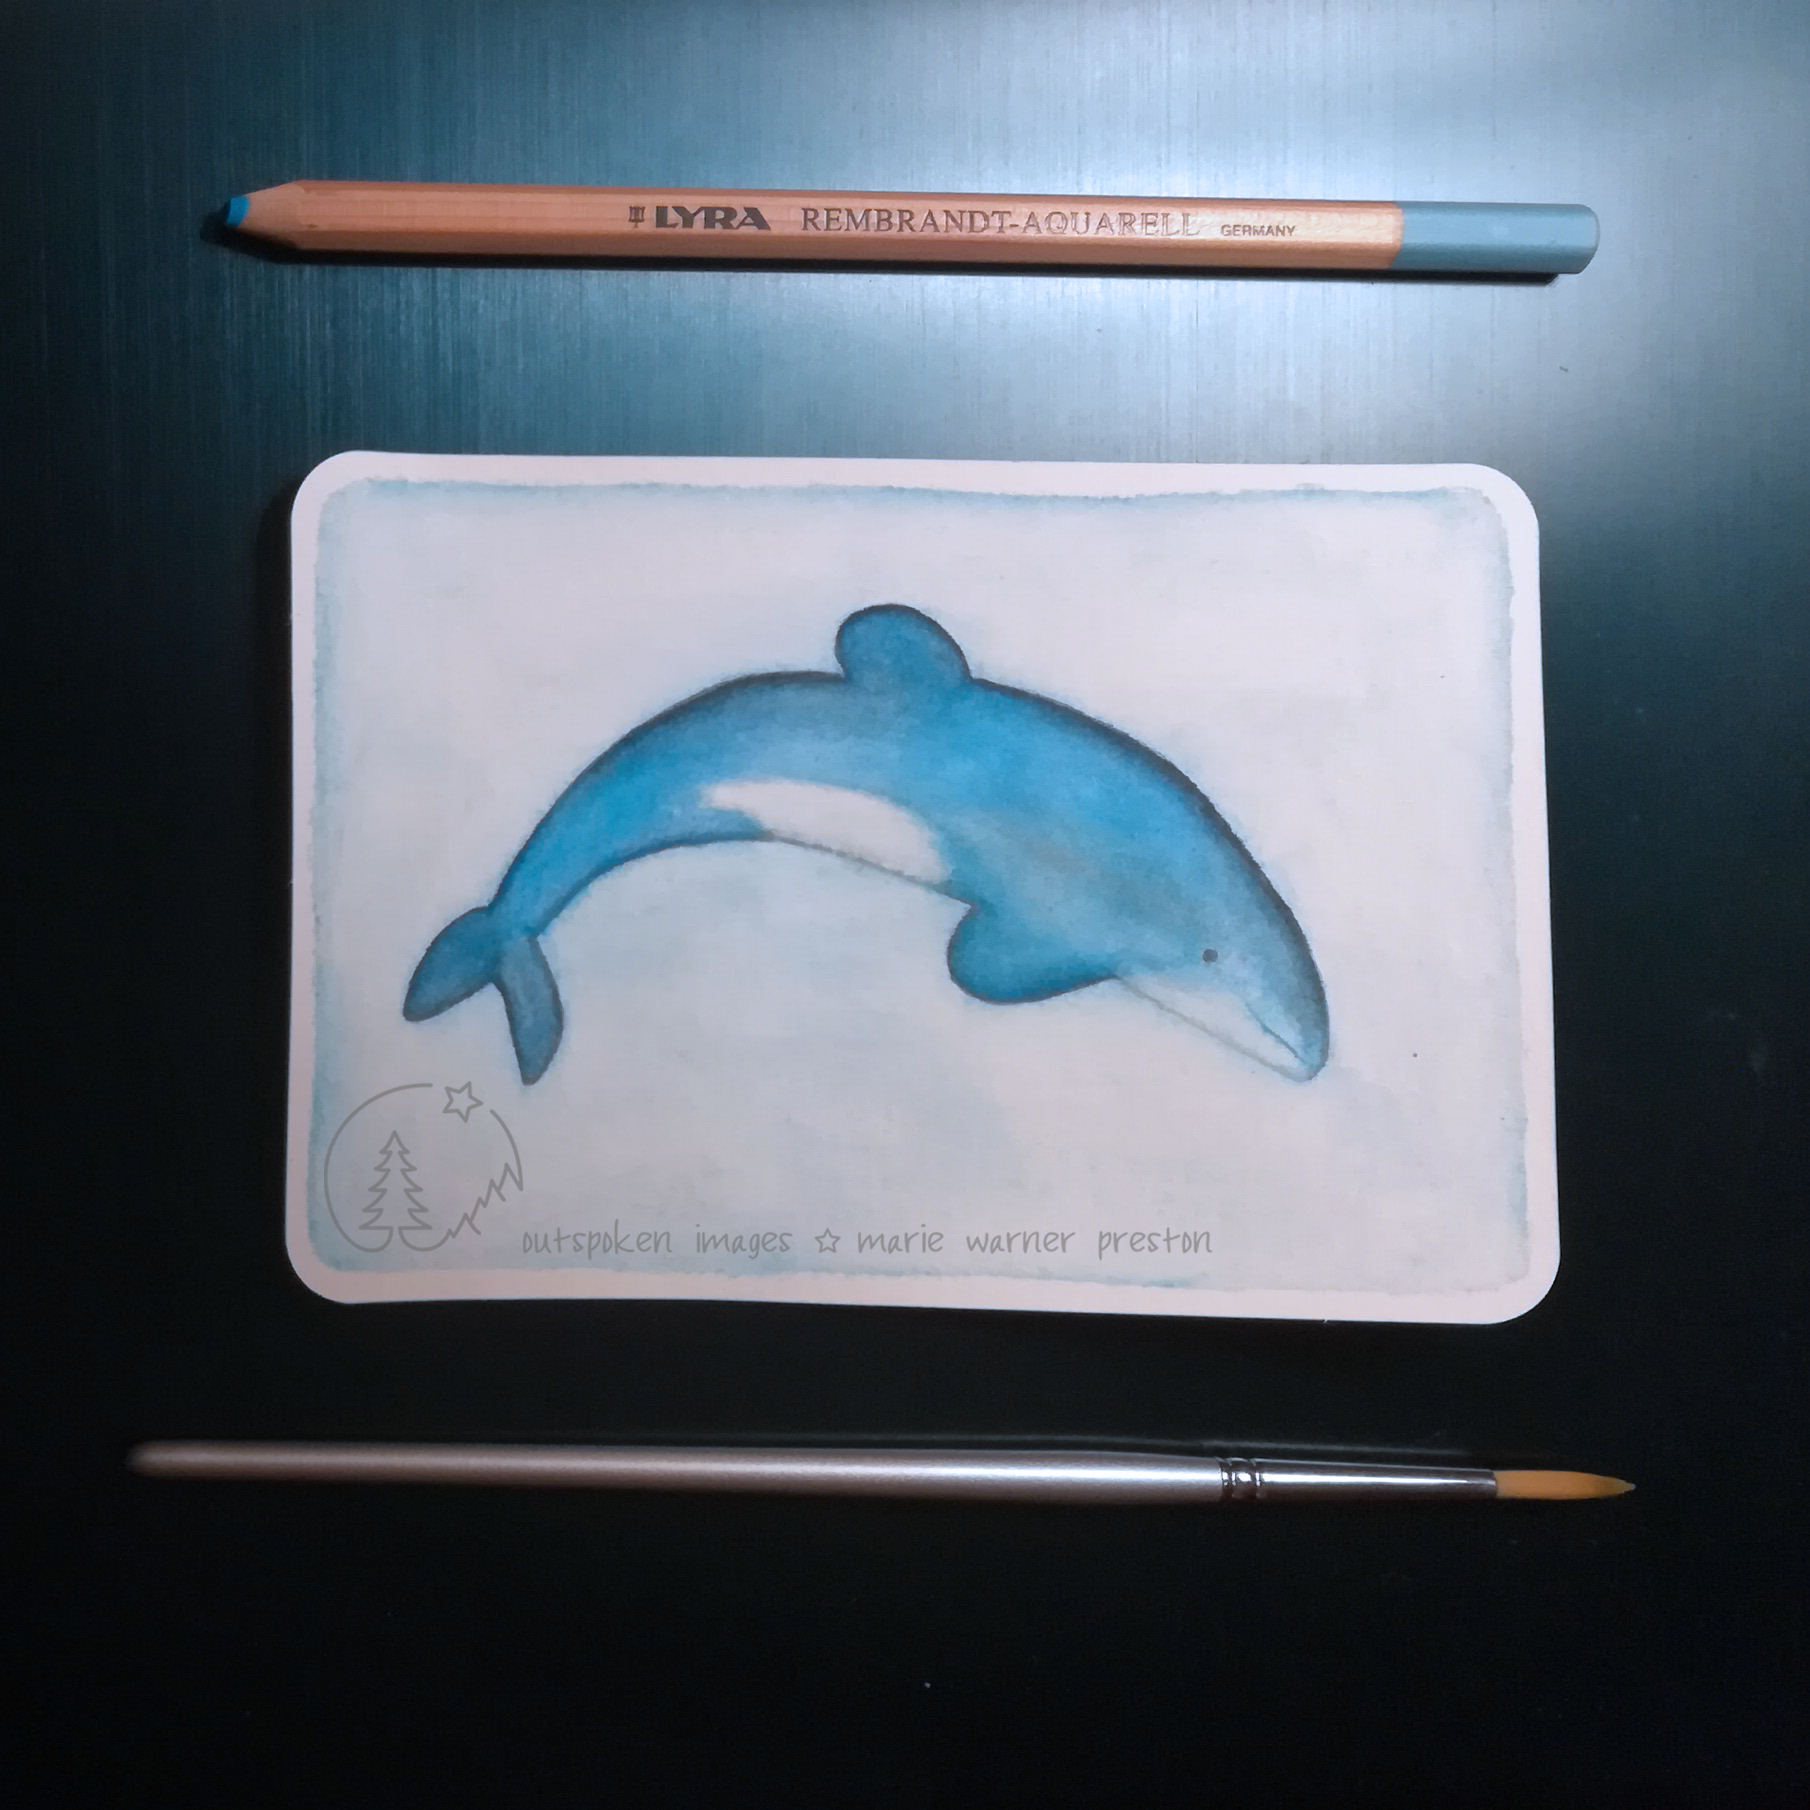 blue maui dolphin painting with blue pencil and silver paintbrush on blue background. #DrawTheOceans dolphin (watercolour) ©2021 Outspoken Images by Marie Warner Preston